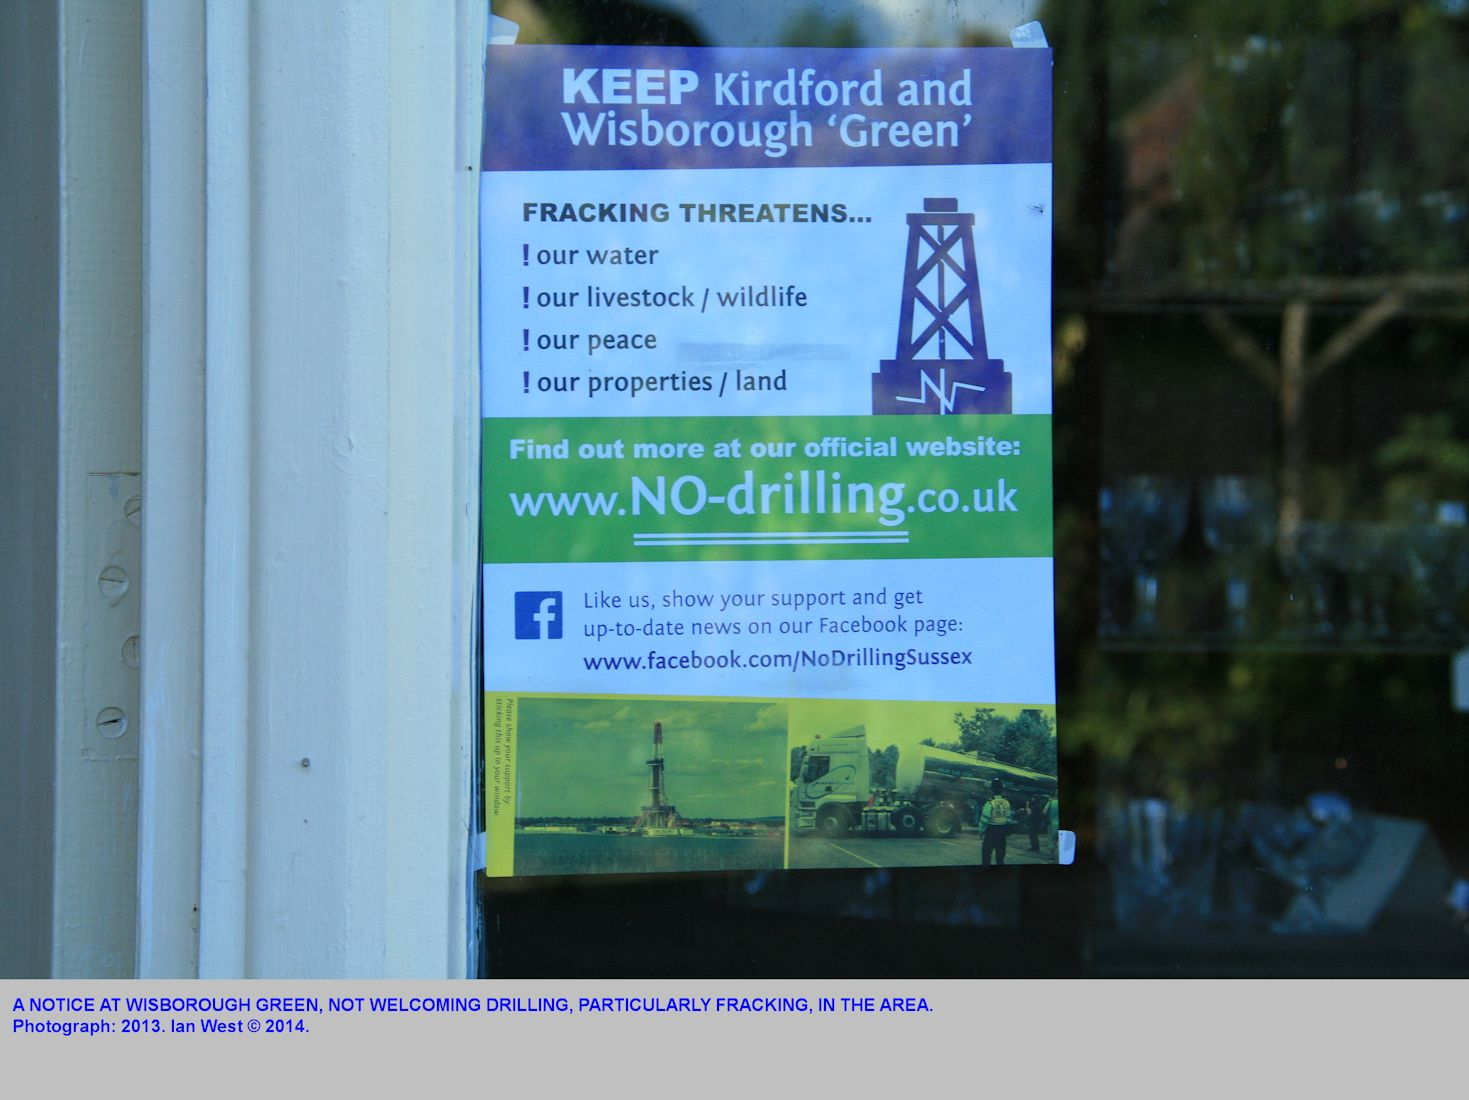 A notice at Wisborough Green, apparently not welcoming an oil well, with hydraulic fracturing, in the neighbourhood, 2013